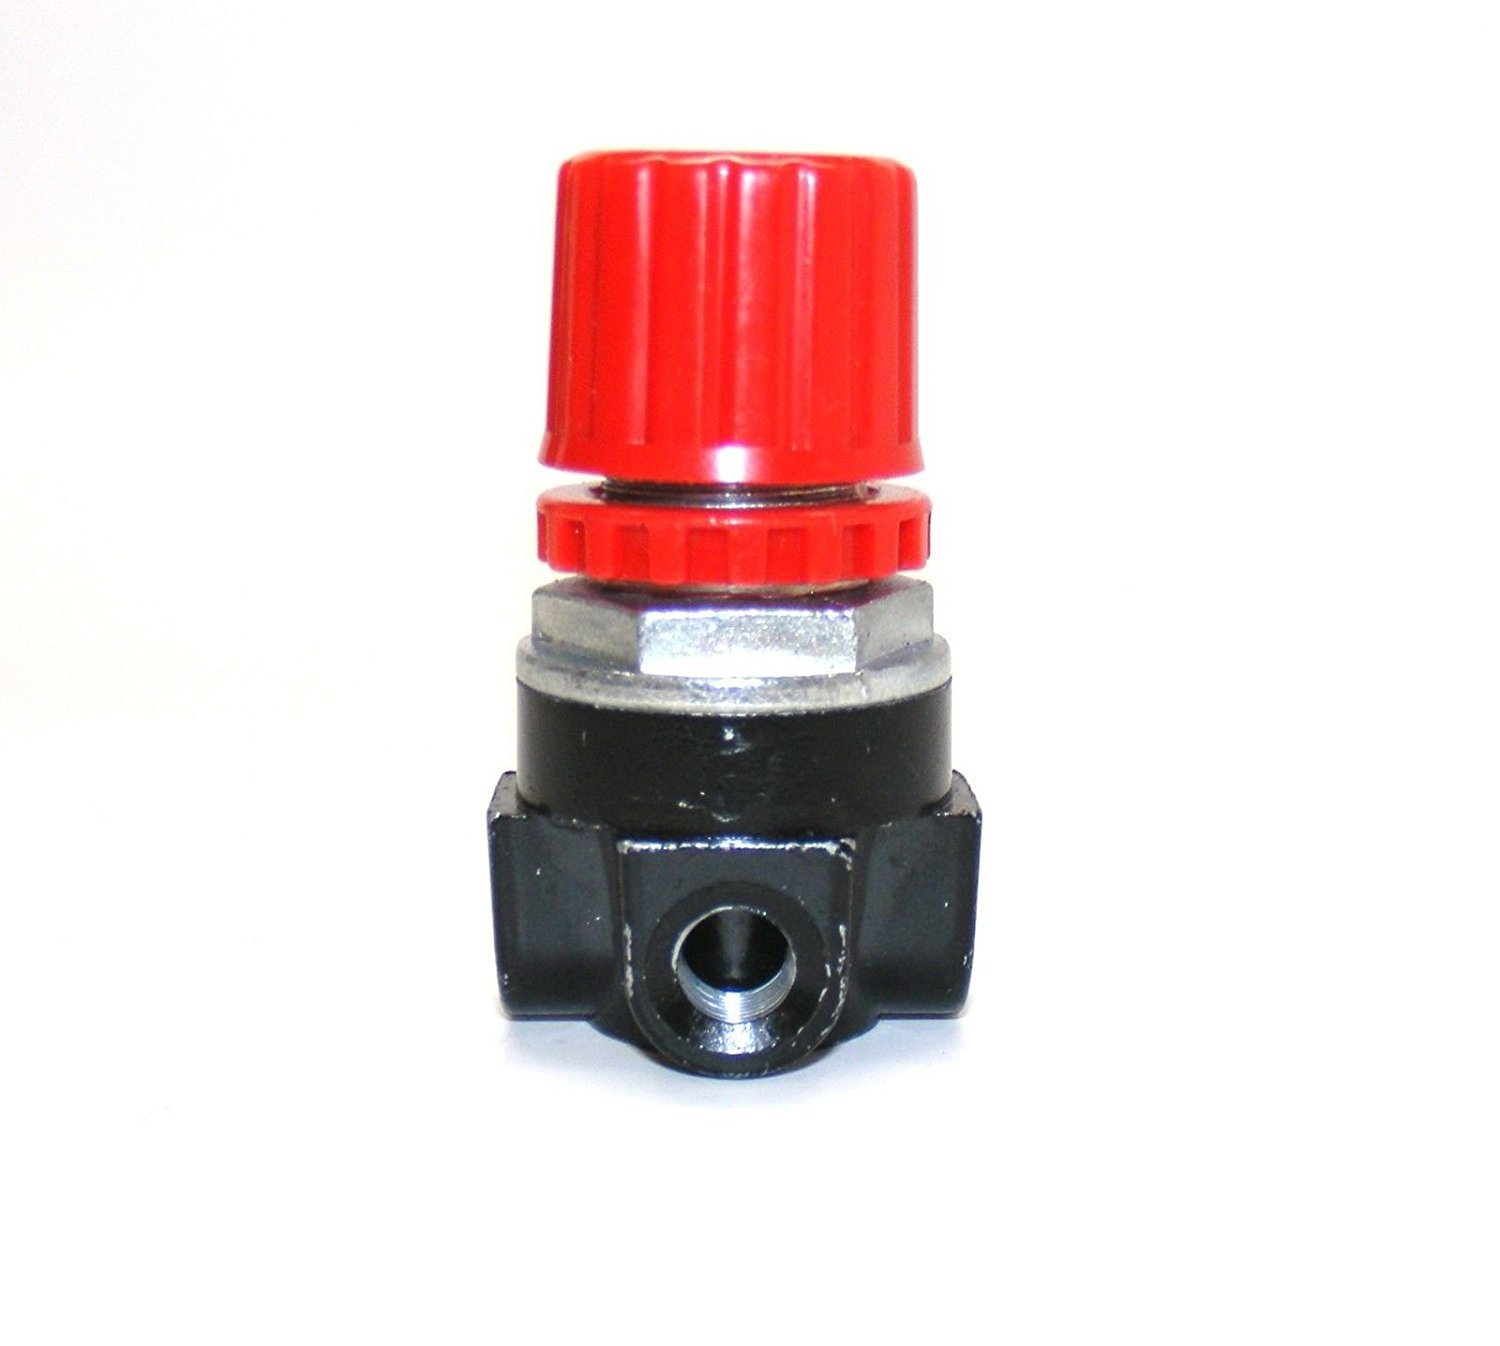 hight resolution of get quotations pressure reducer ab 9051116 replacement for bostitch air compressor genuine